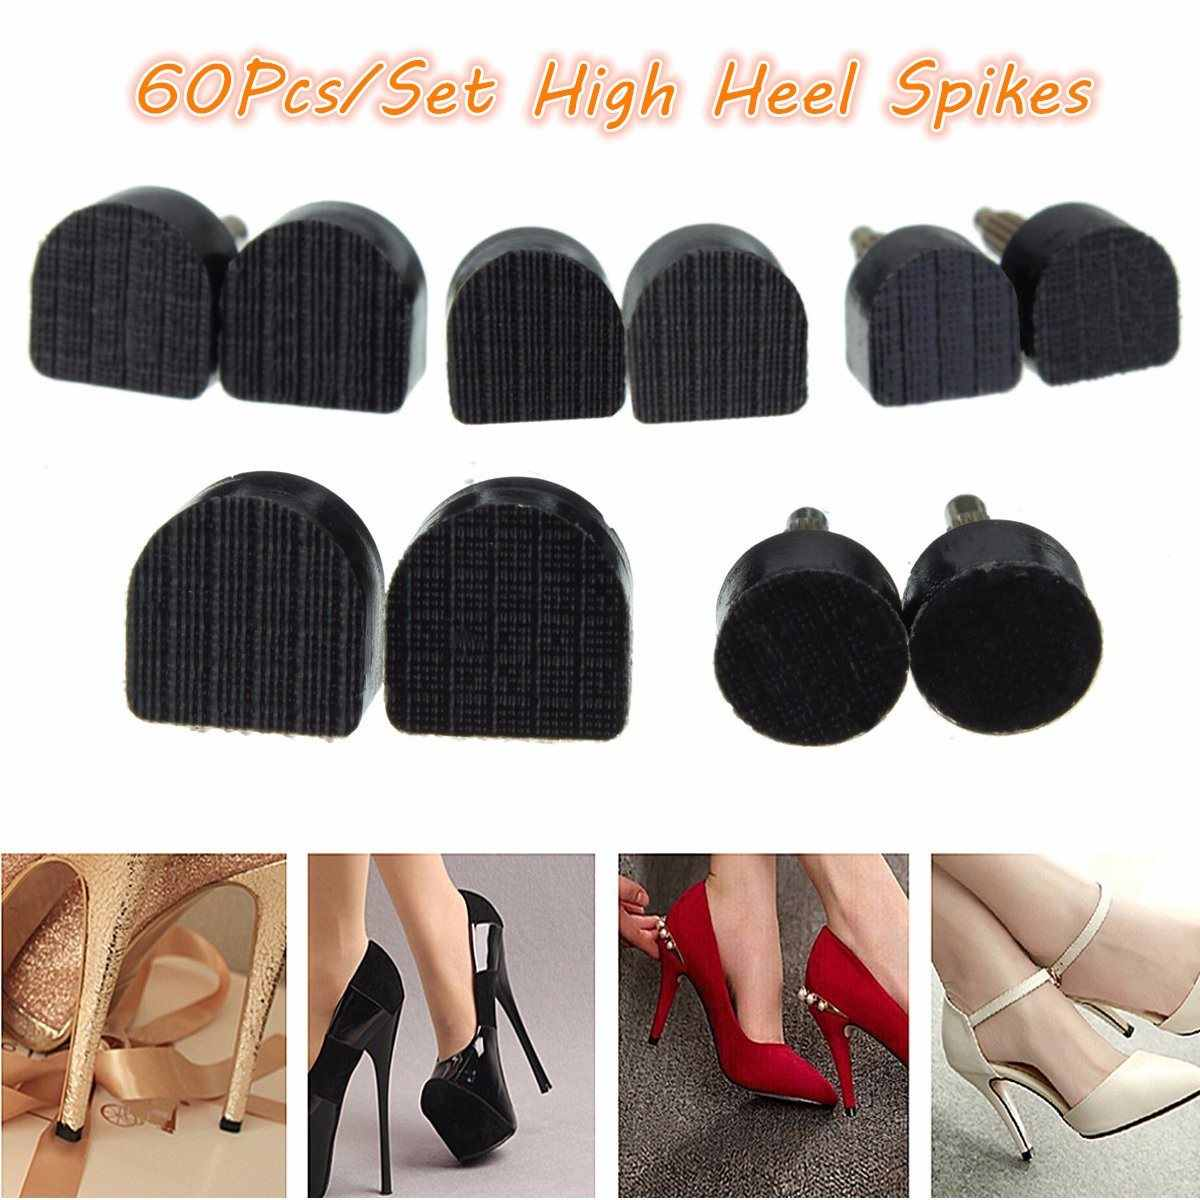 510e1cf0b2 BSAID 60pcs/lot High Heel Spikes Tips Taps Dowel Lifts Replacement Heel  Stoppers Protector Lady